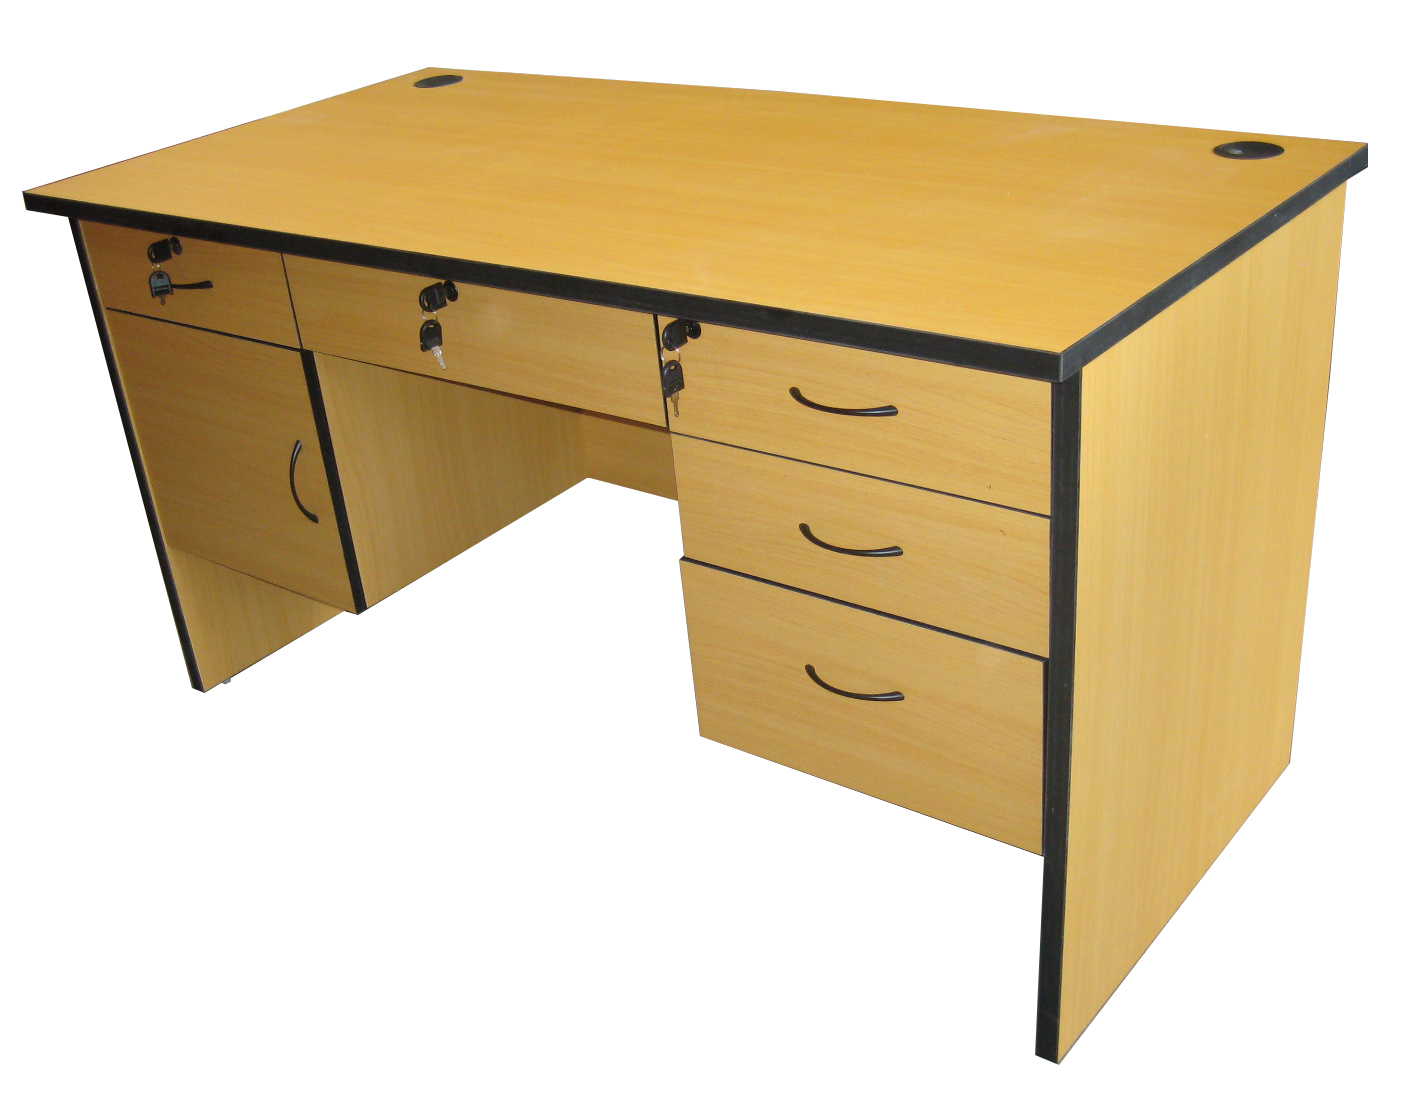 Soho BELGIUM Office Table W 6 Drawers Groumet Pvc